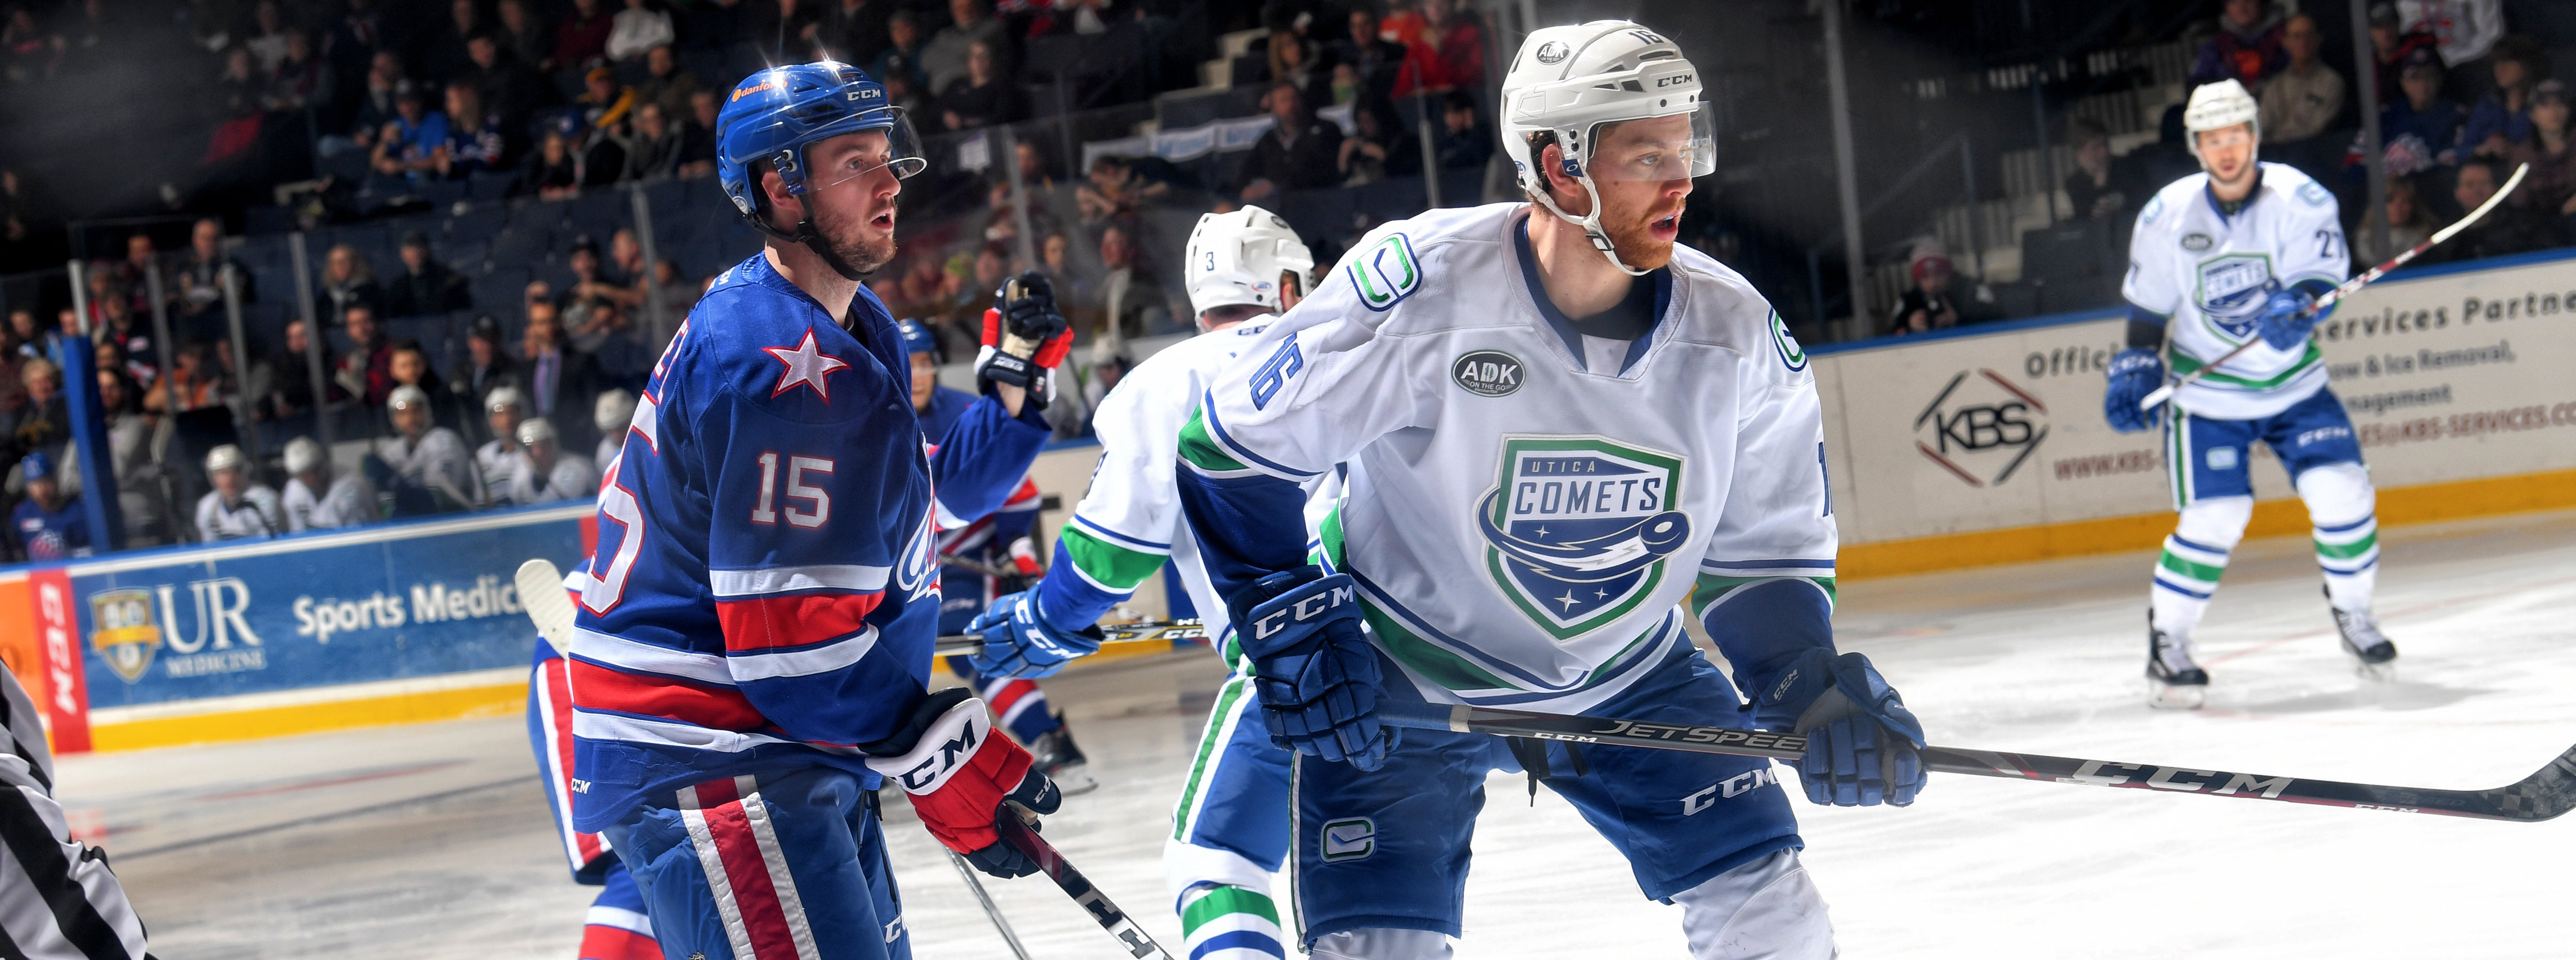 COMETS GRIND OUT DIVISIONAL WIN IN ROCHESTER